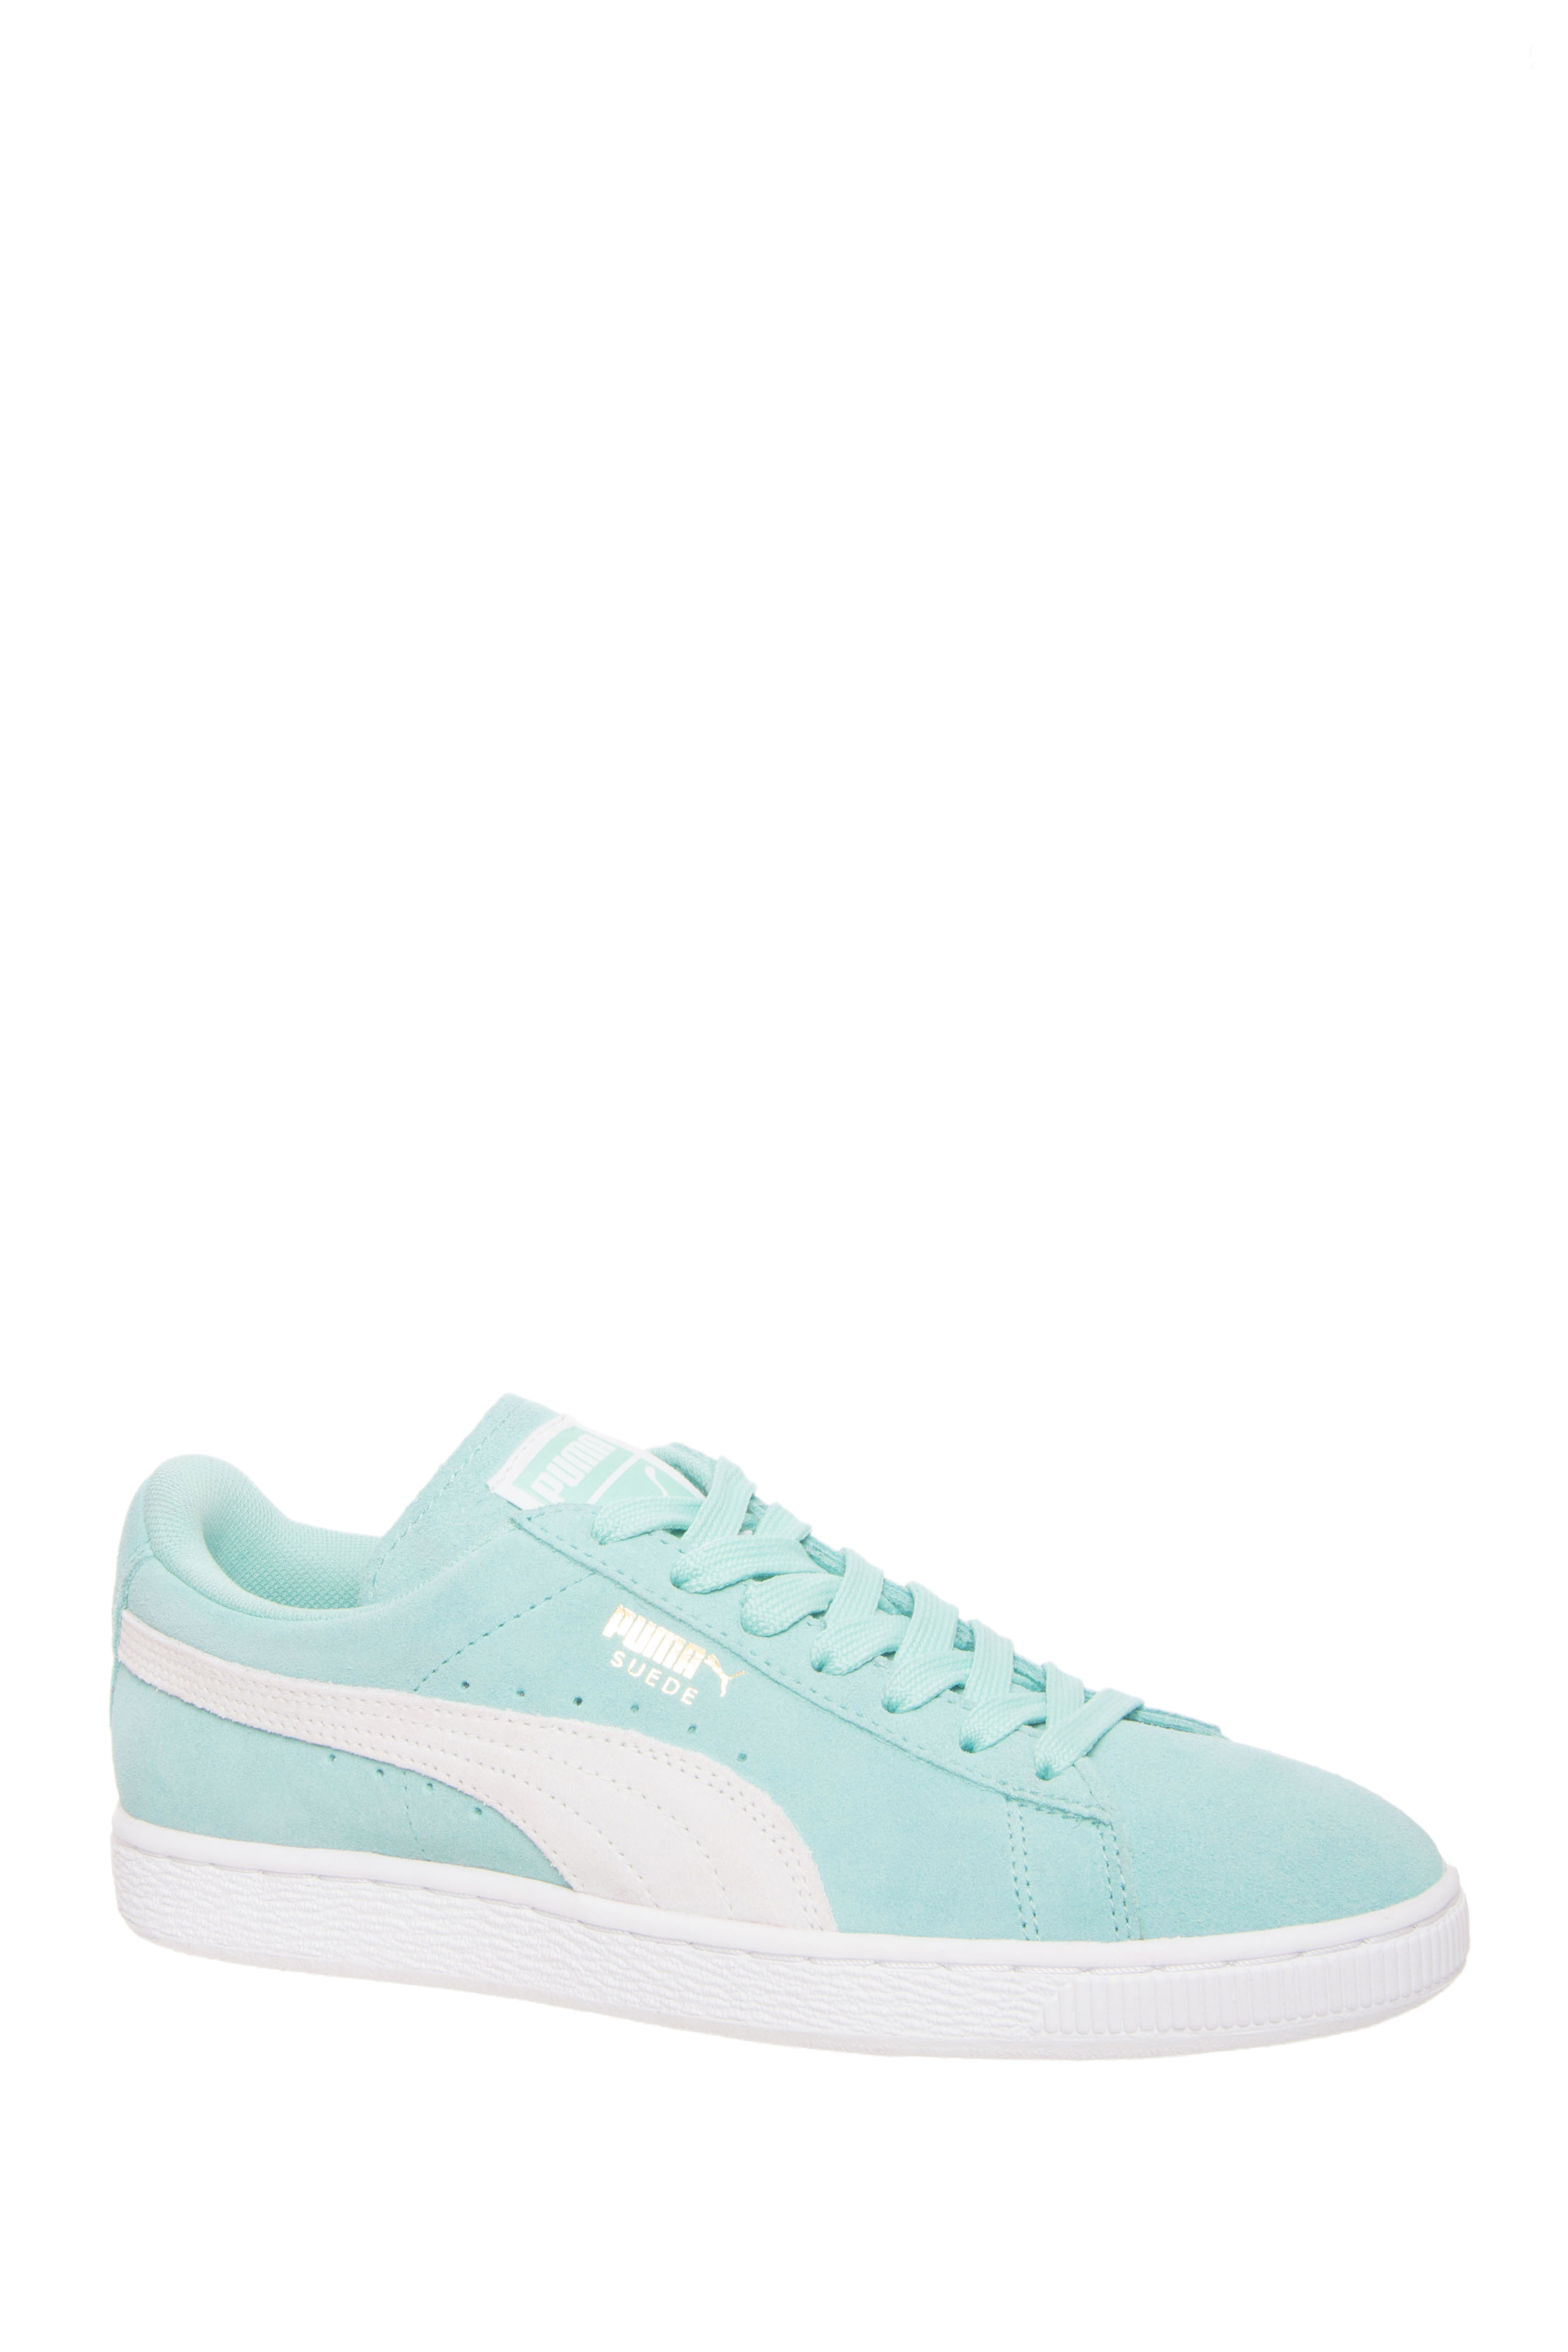 Puma Suede Classic Low Top Sneakers -  Holiday White